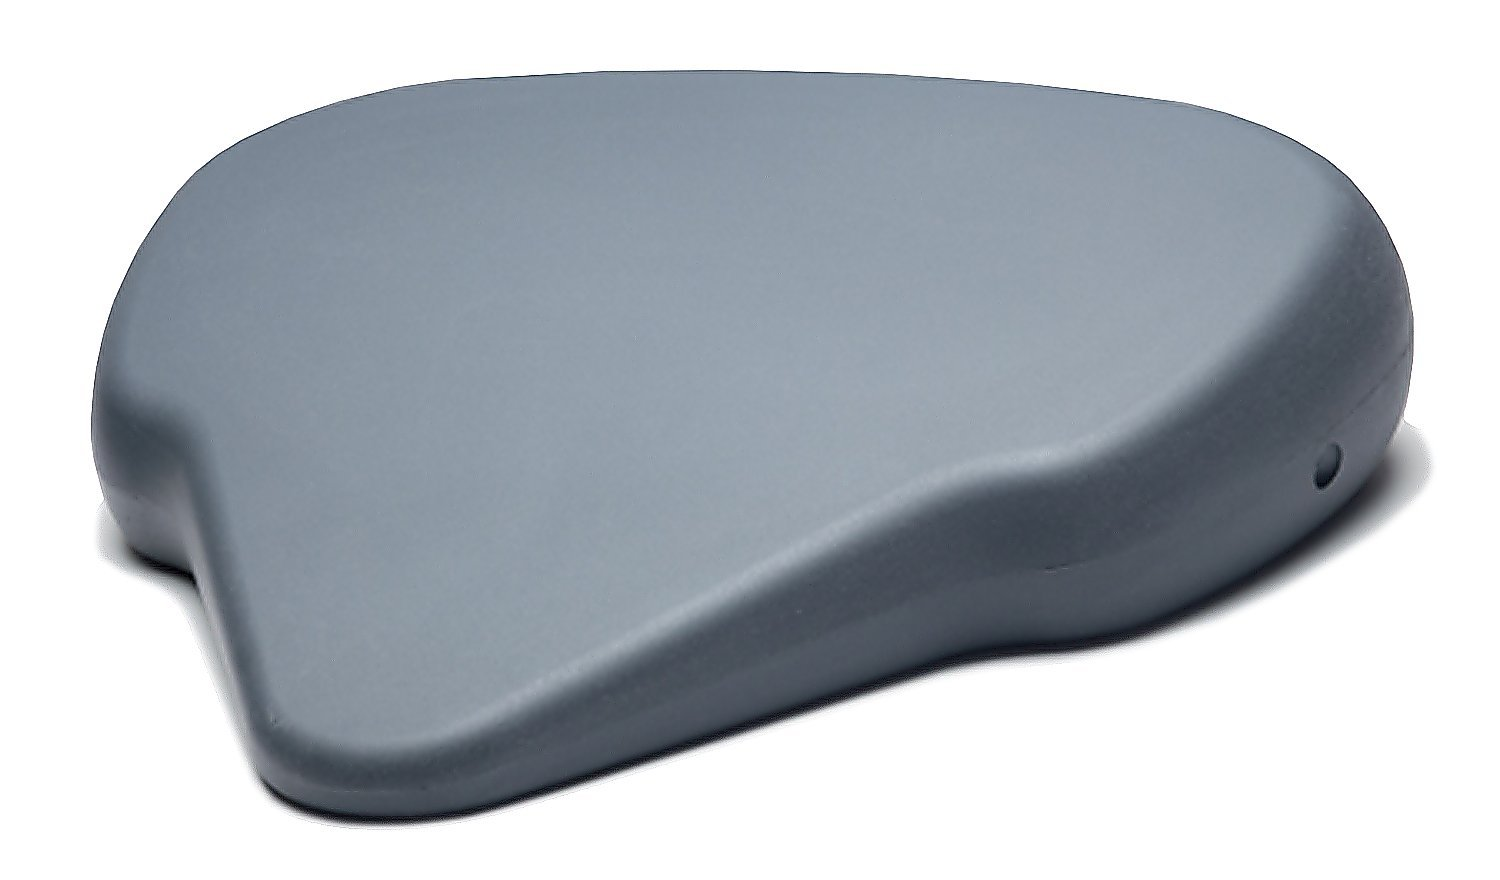 SITTS Posture Cushion Reduced Low Back Pain with Instant Dynamic Ergonomics 4'' Wedge for Coccyx, Back & Sciatica/Flexible Firm/Soft Washable Integral Skin, New Experience in Comfort & Regain Posture